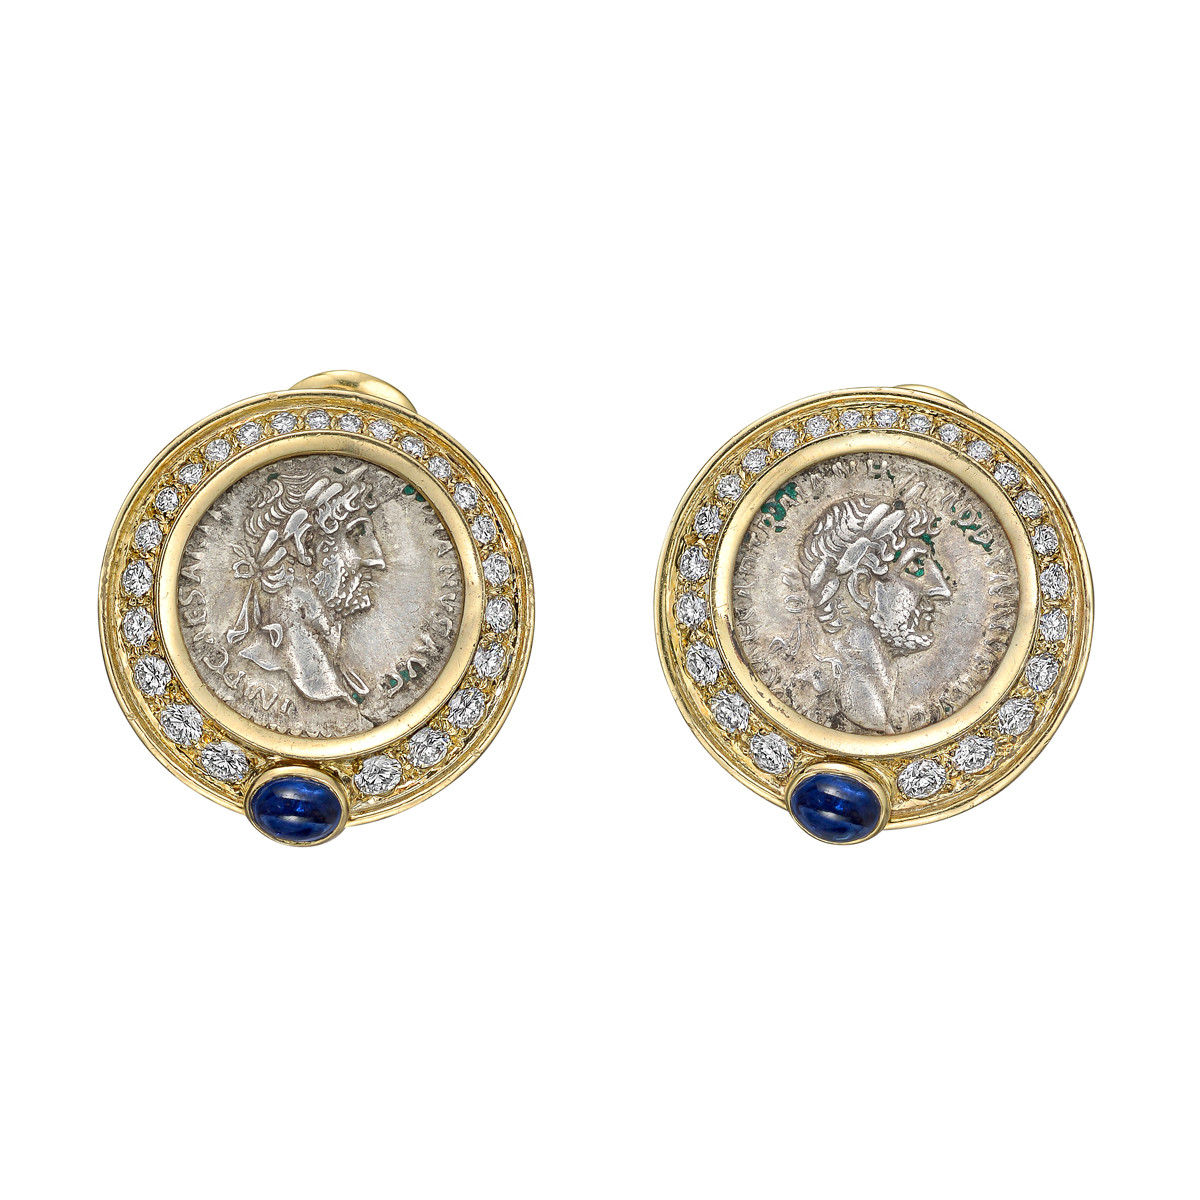 18k Yellow Gold, Diamond & Silver Coin Earrings